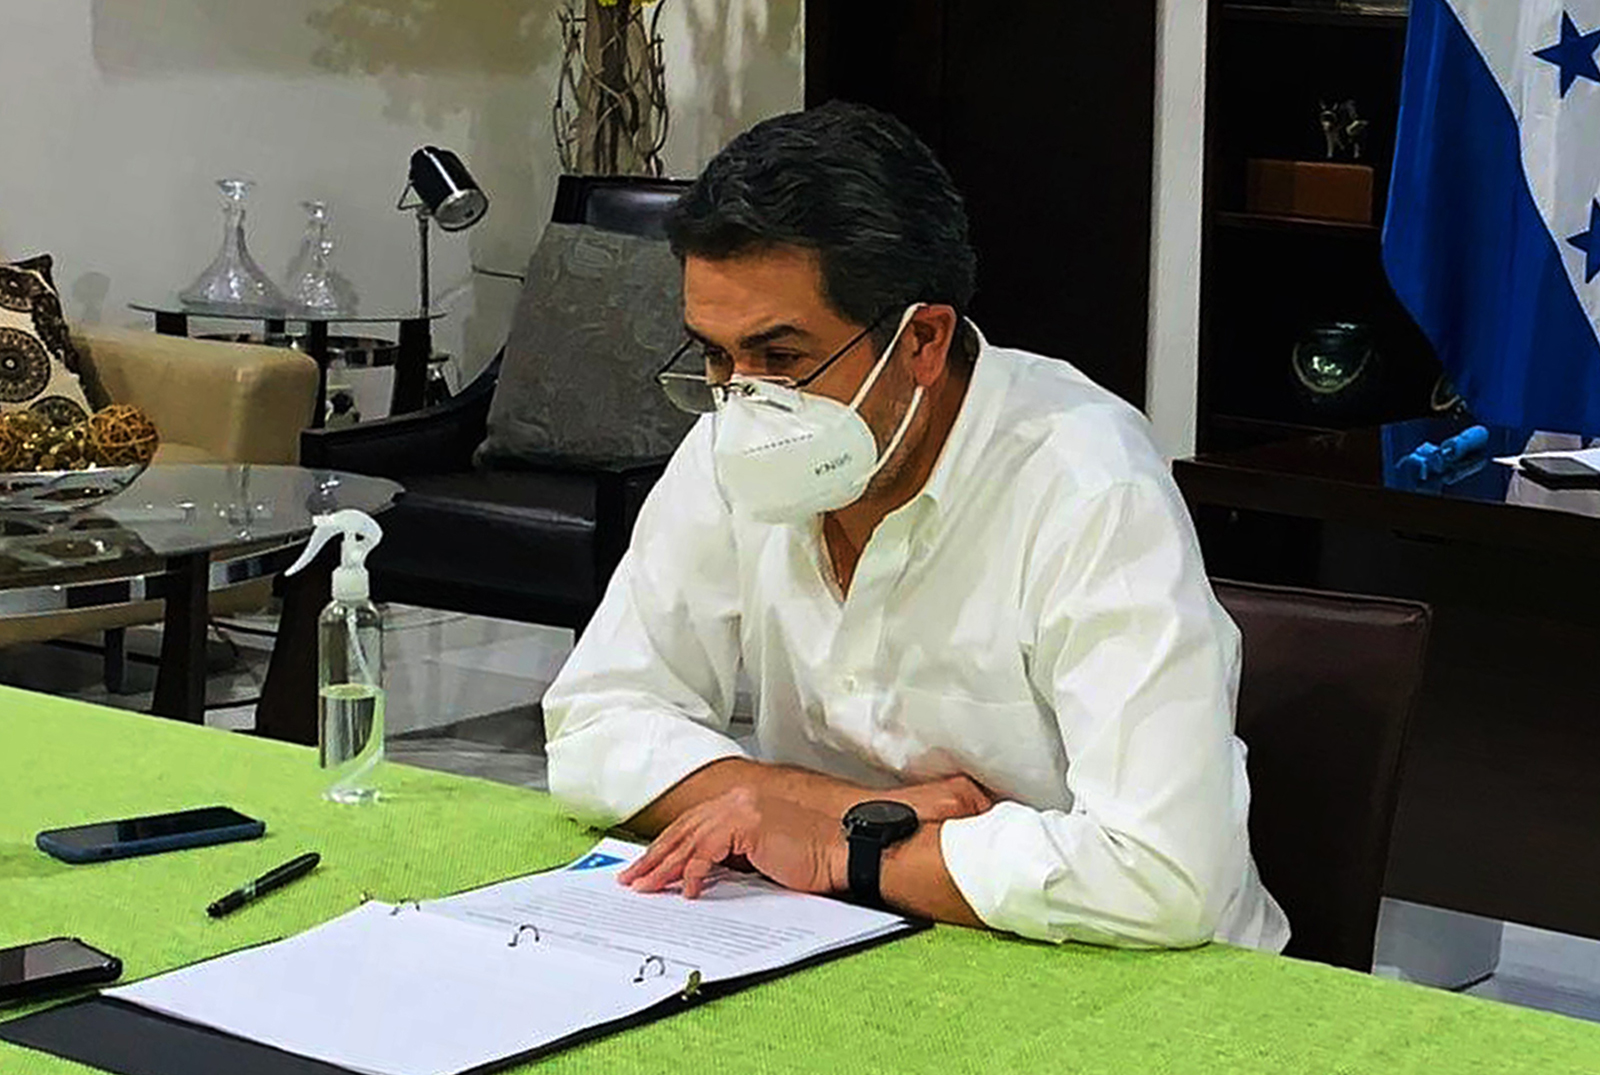 Honduran President Juan Orlando Hernandez wears a face mask in Tegucigalpa, Honduras on June 15.